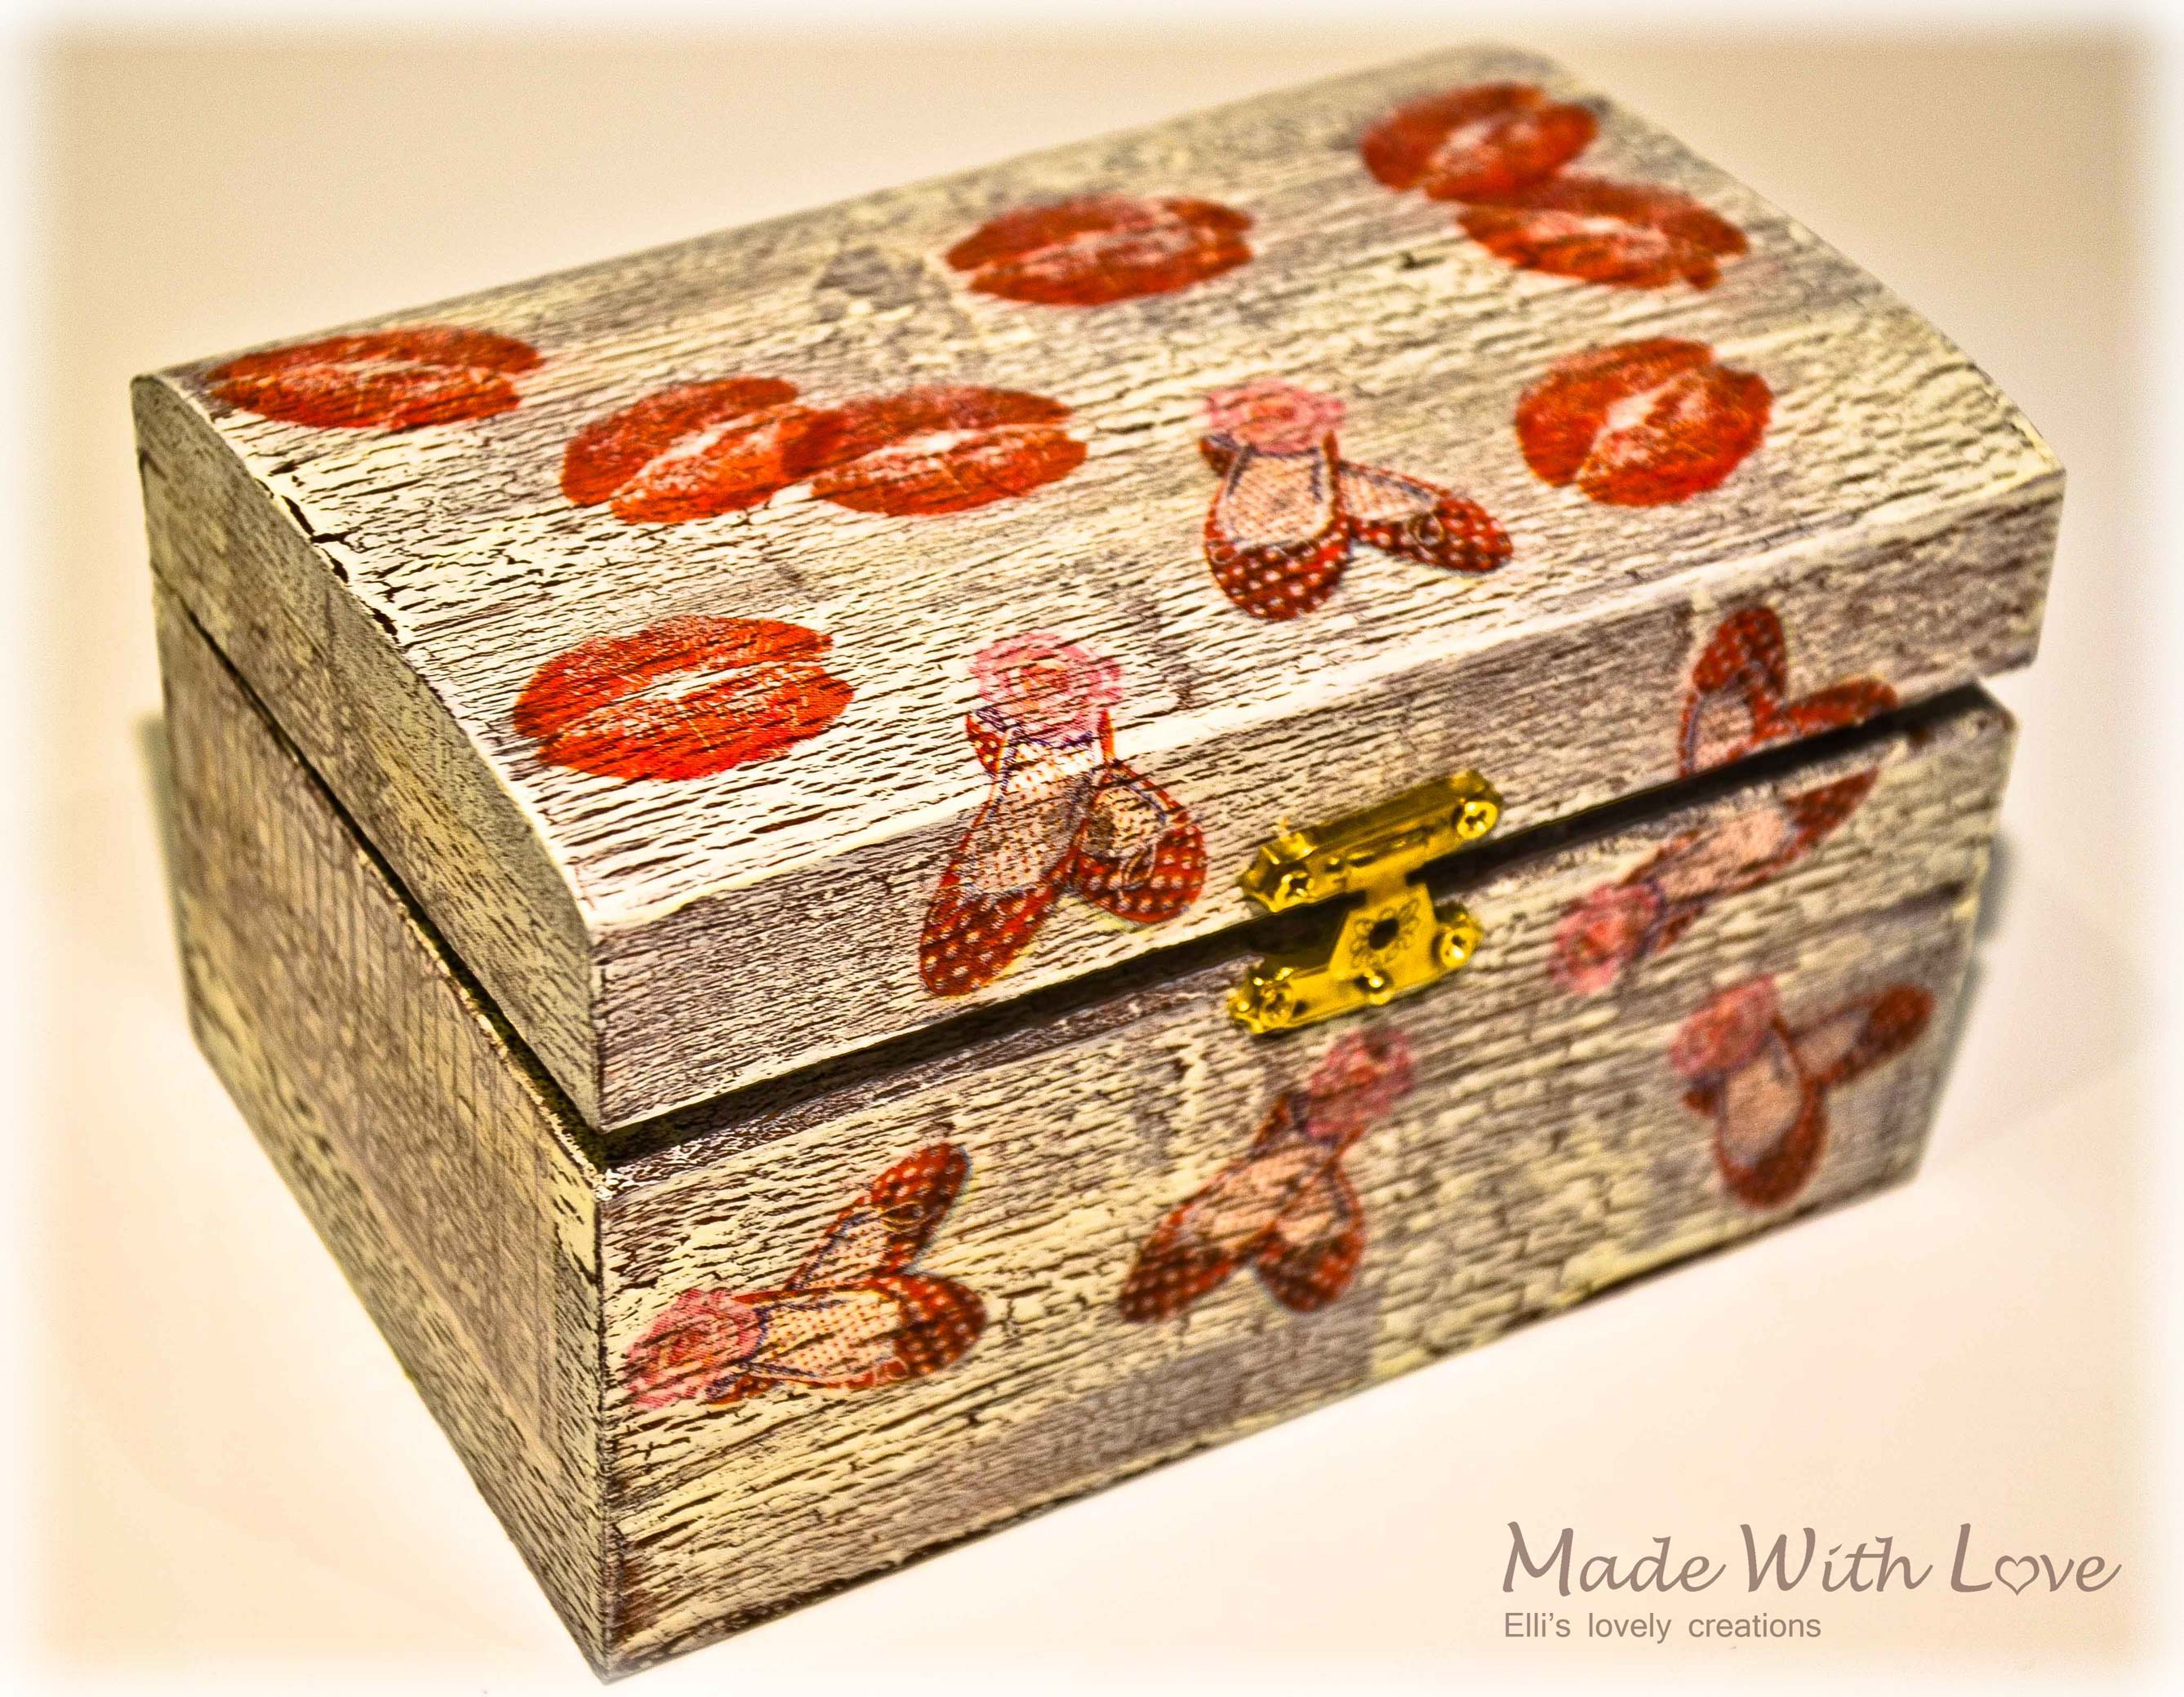 Wooden Jewelry Box I / Napkin & Crackle Paint Technique